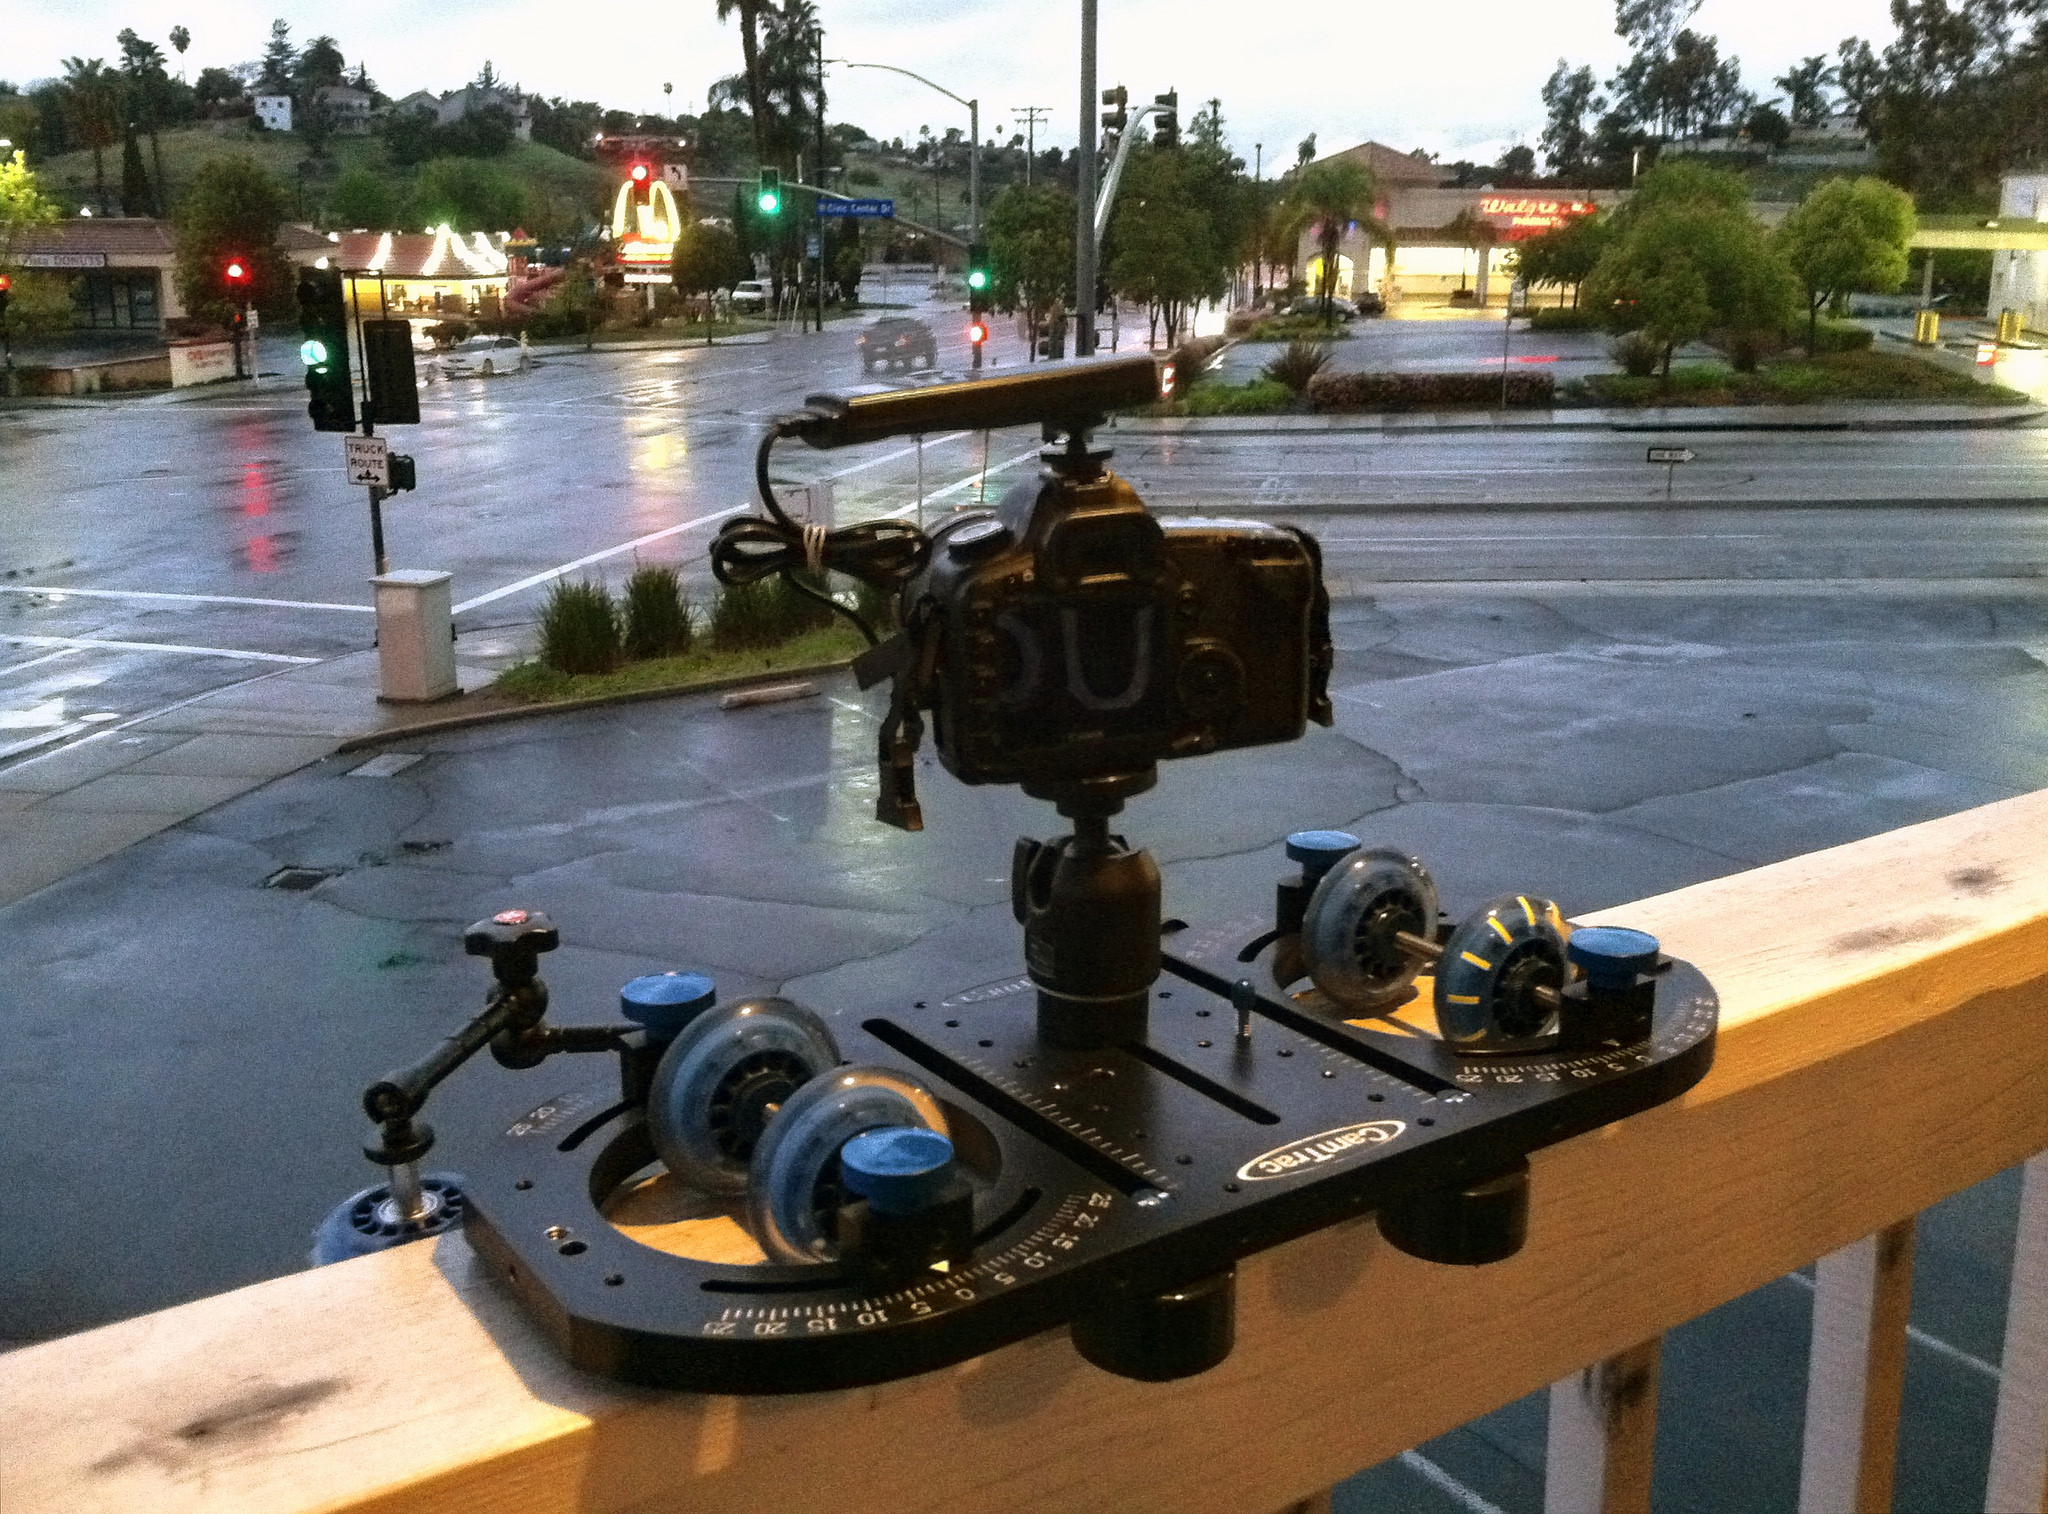 An Introduction to Hyper-lapse